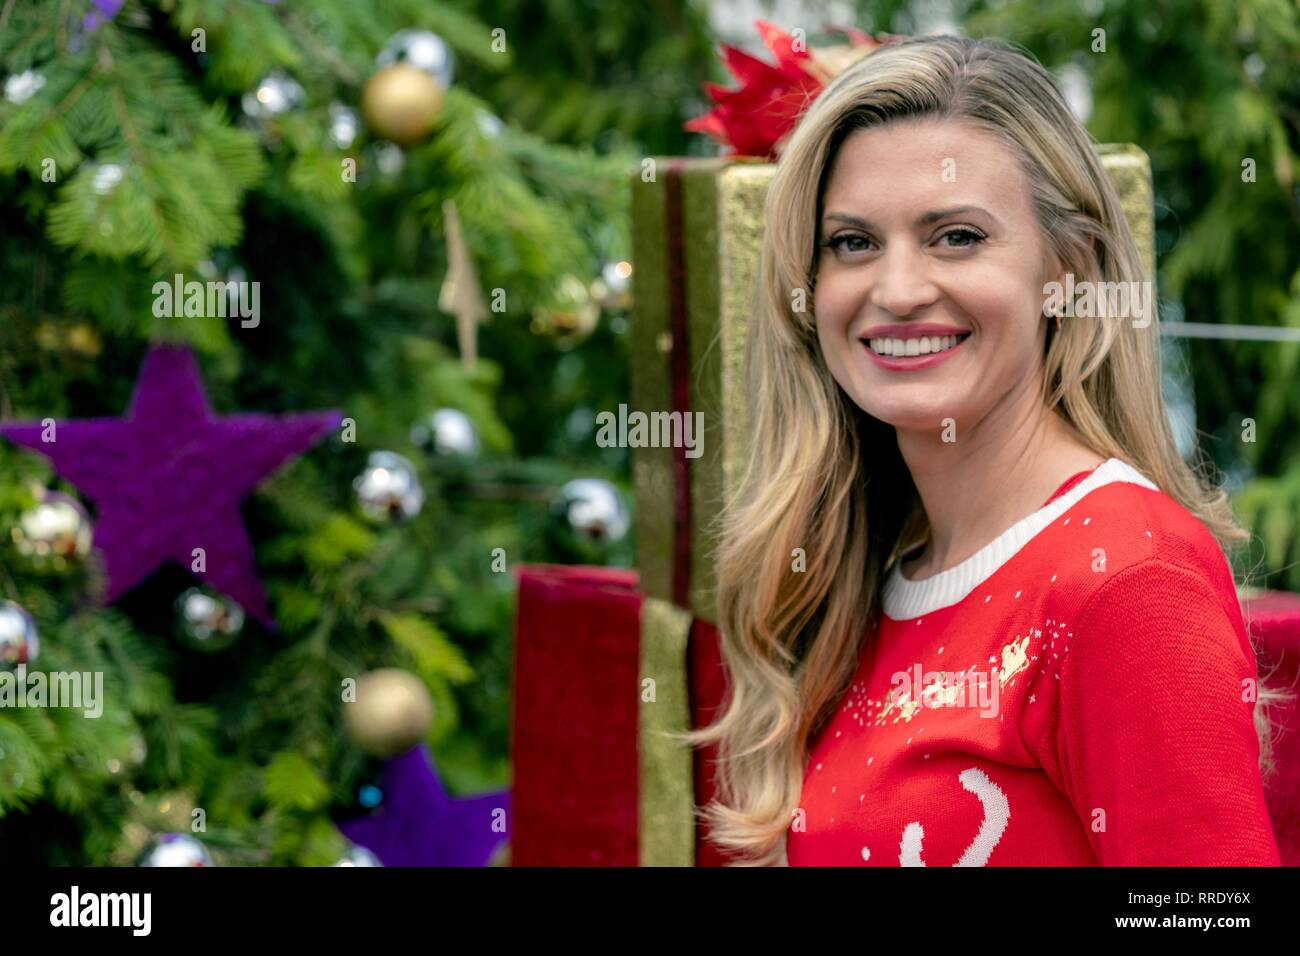 MISS CHRISTMAS, BROOKE D'ORSAY, 2017 Stock Photo